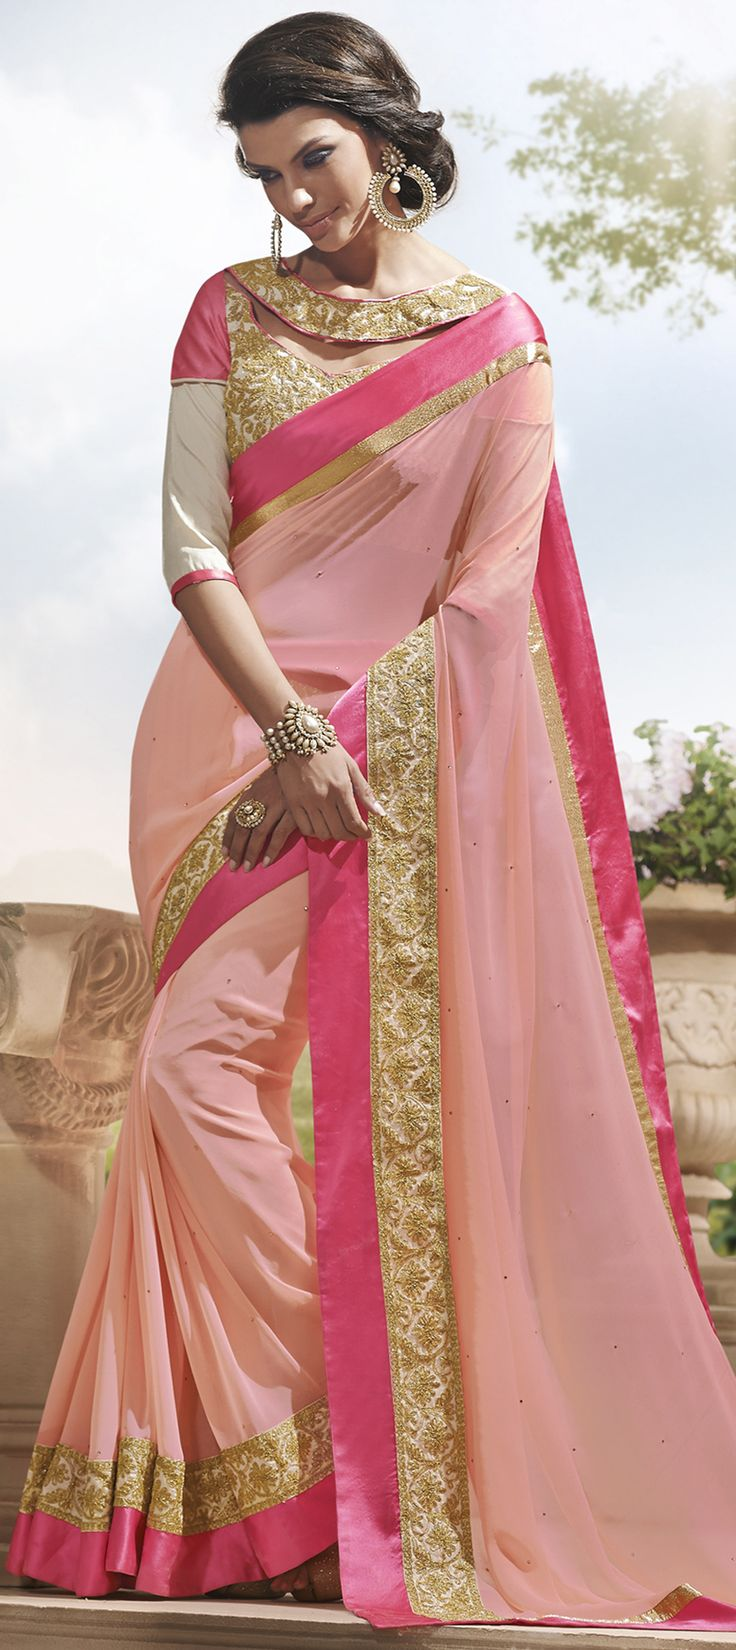 154793: Look at the designer blouse! Get this style in #saree for weddings and parties. #OnlineShopping #IndianFashion